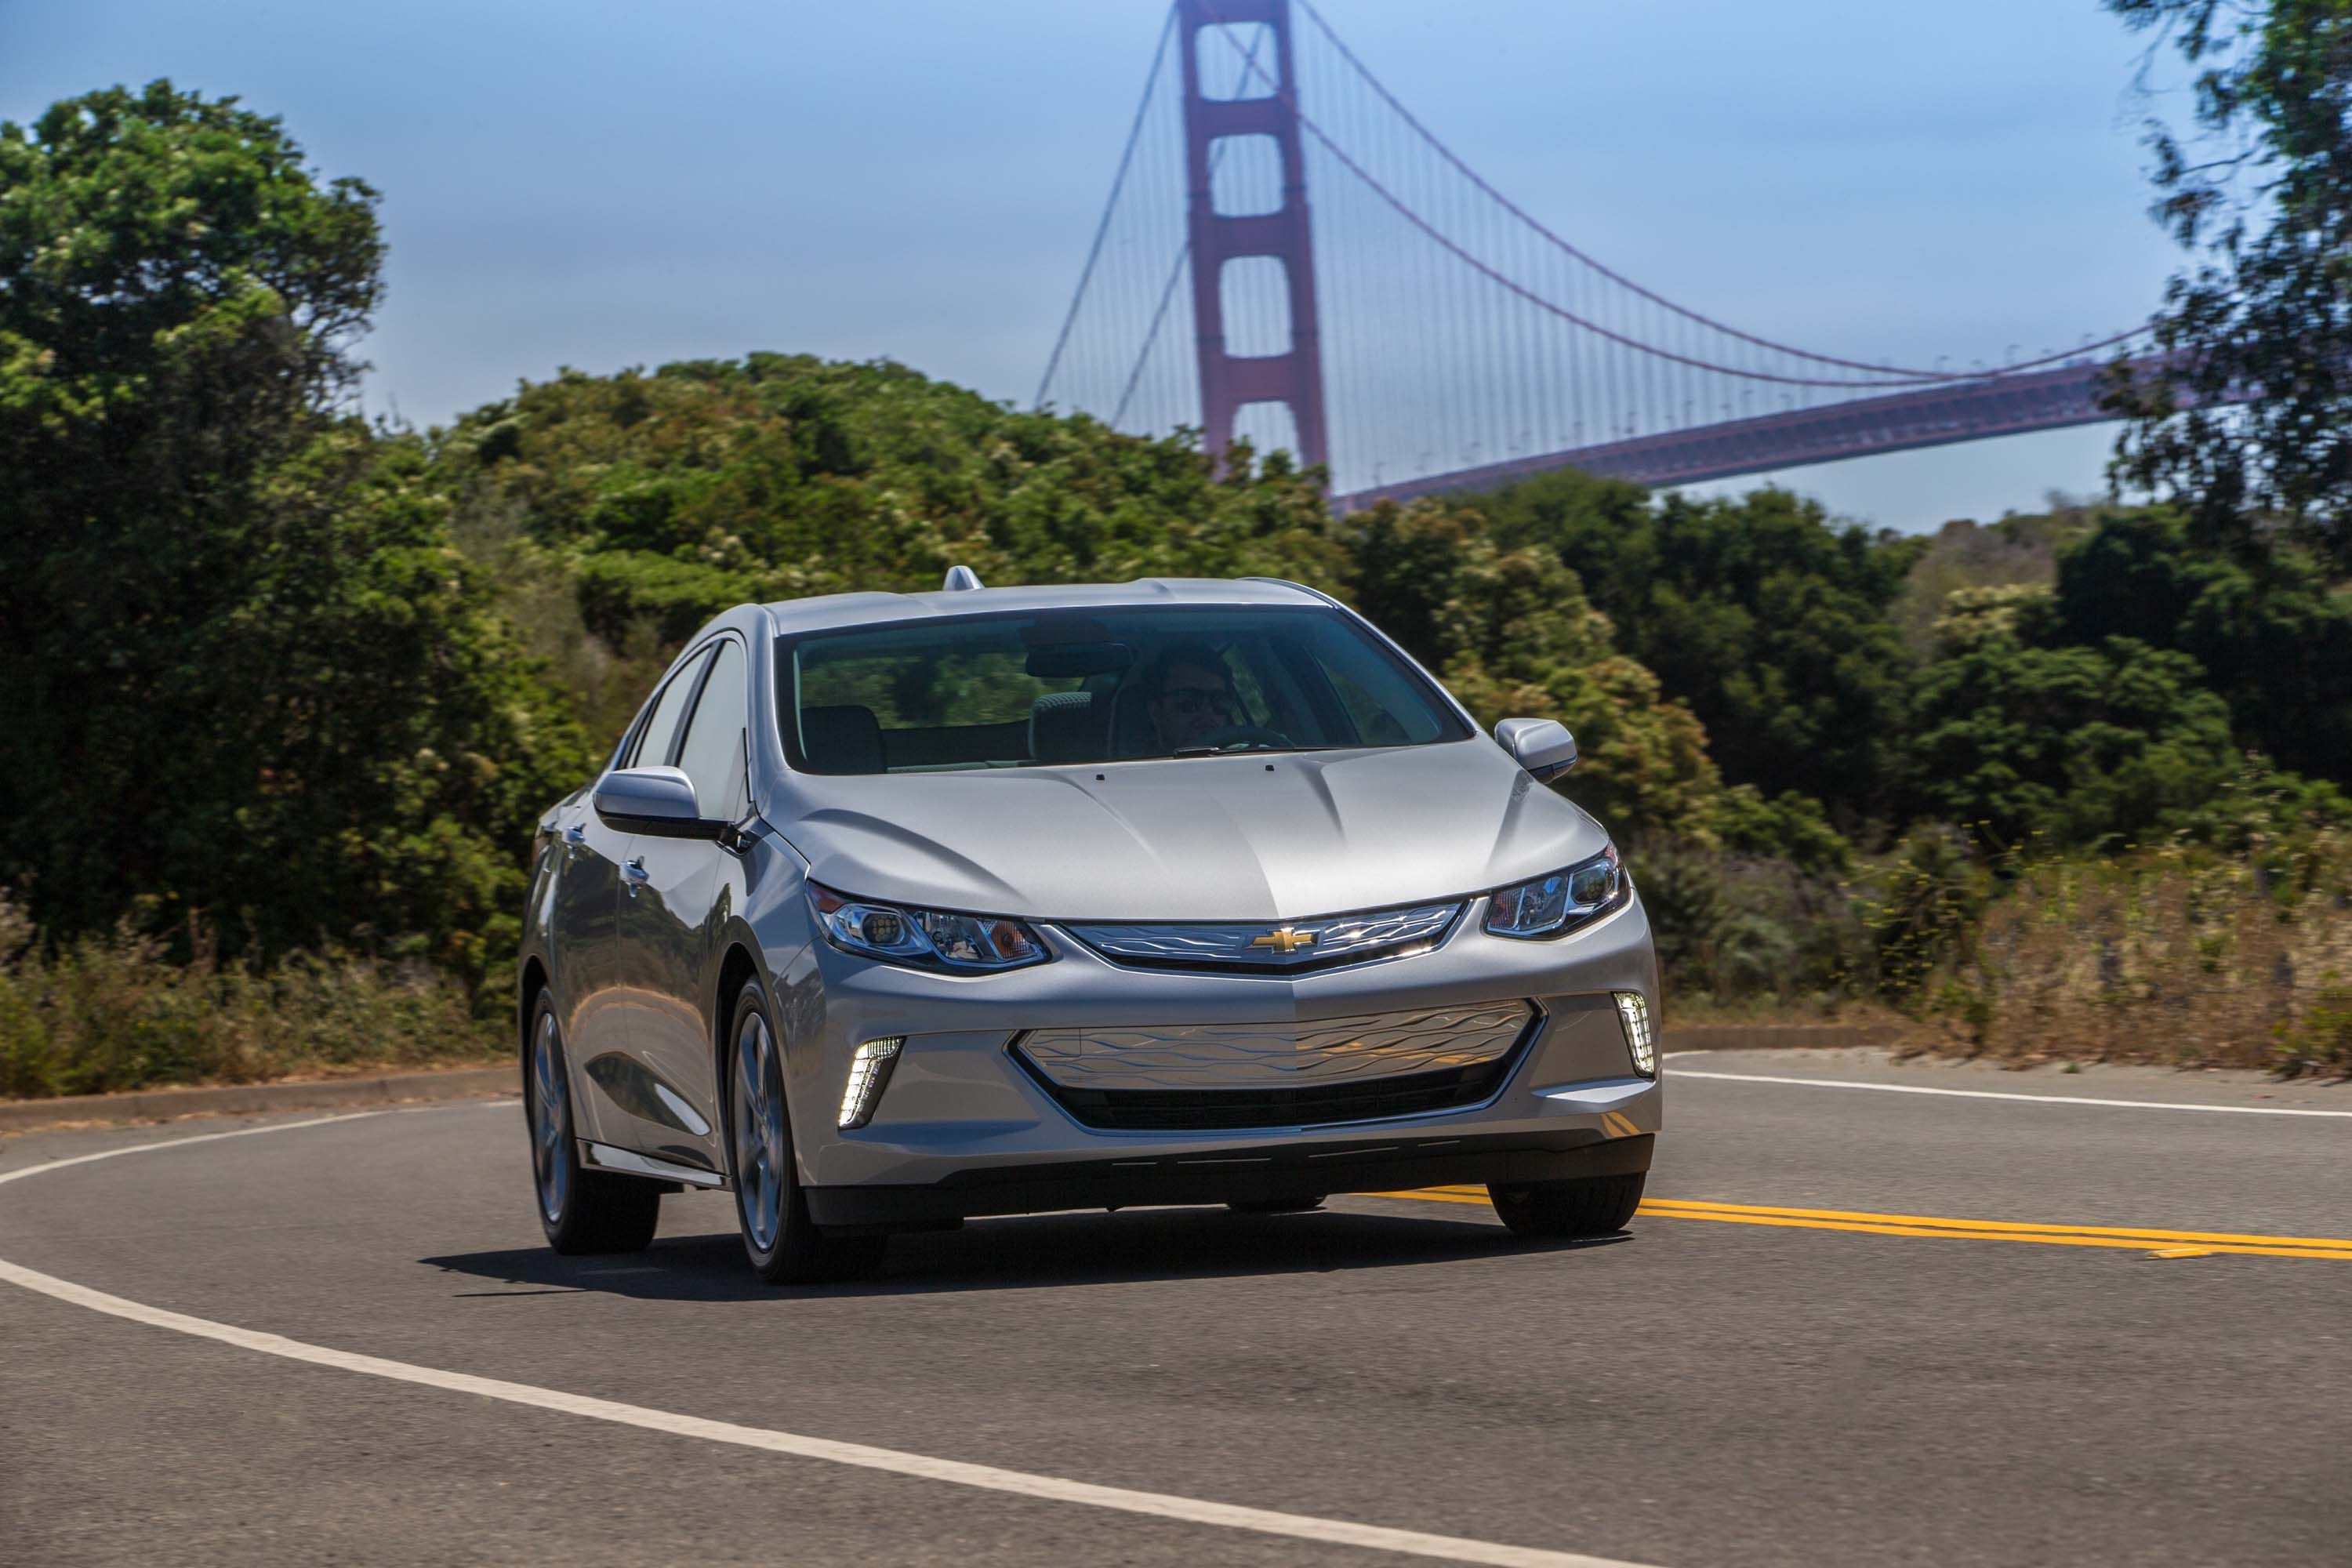 Opinion Gm Got The Chevrolet Volt Wrong Autocar